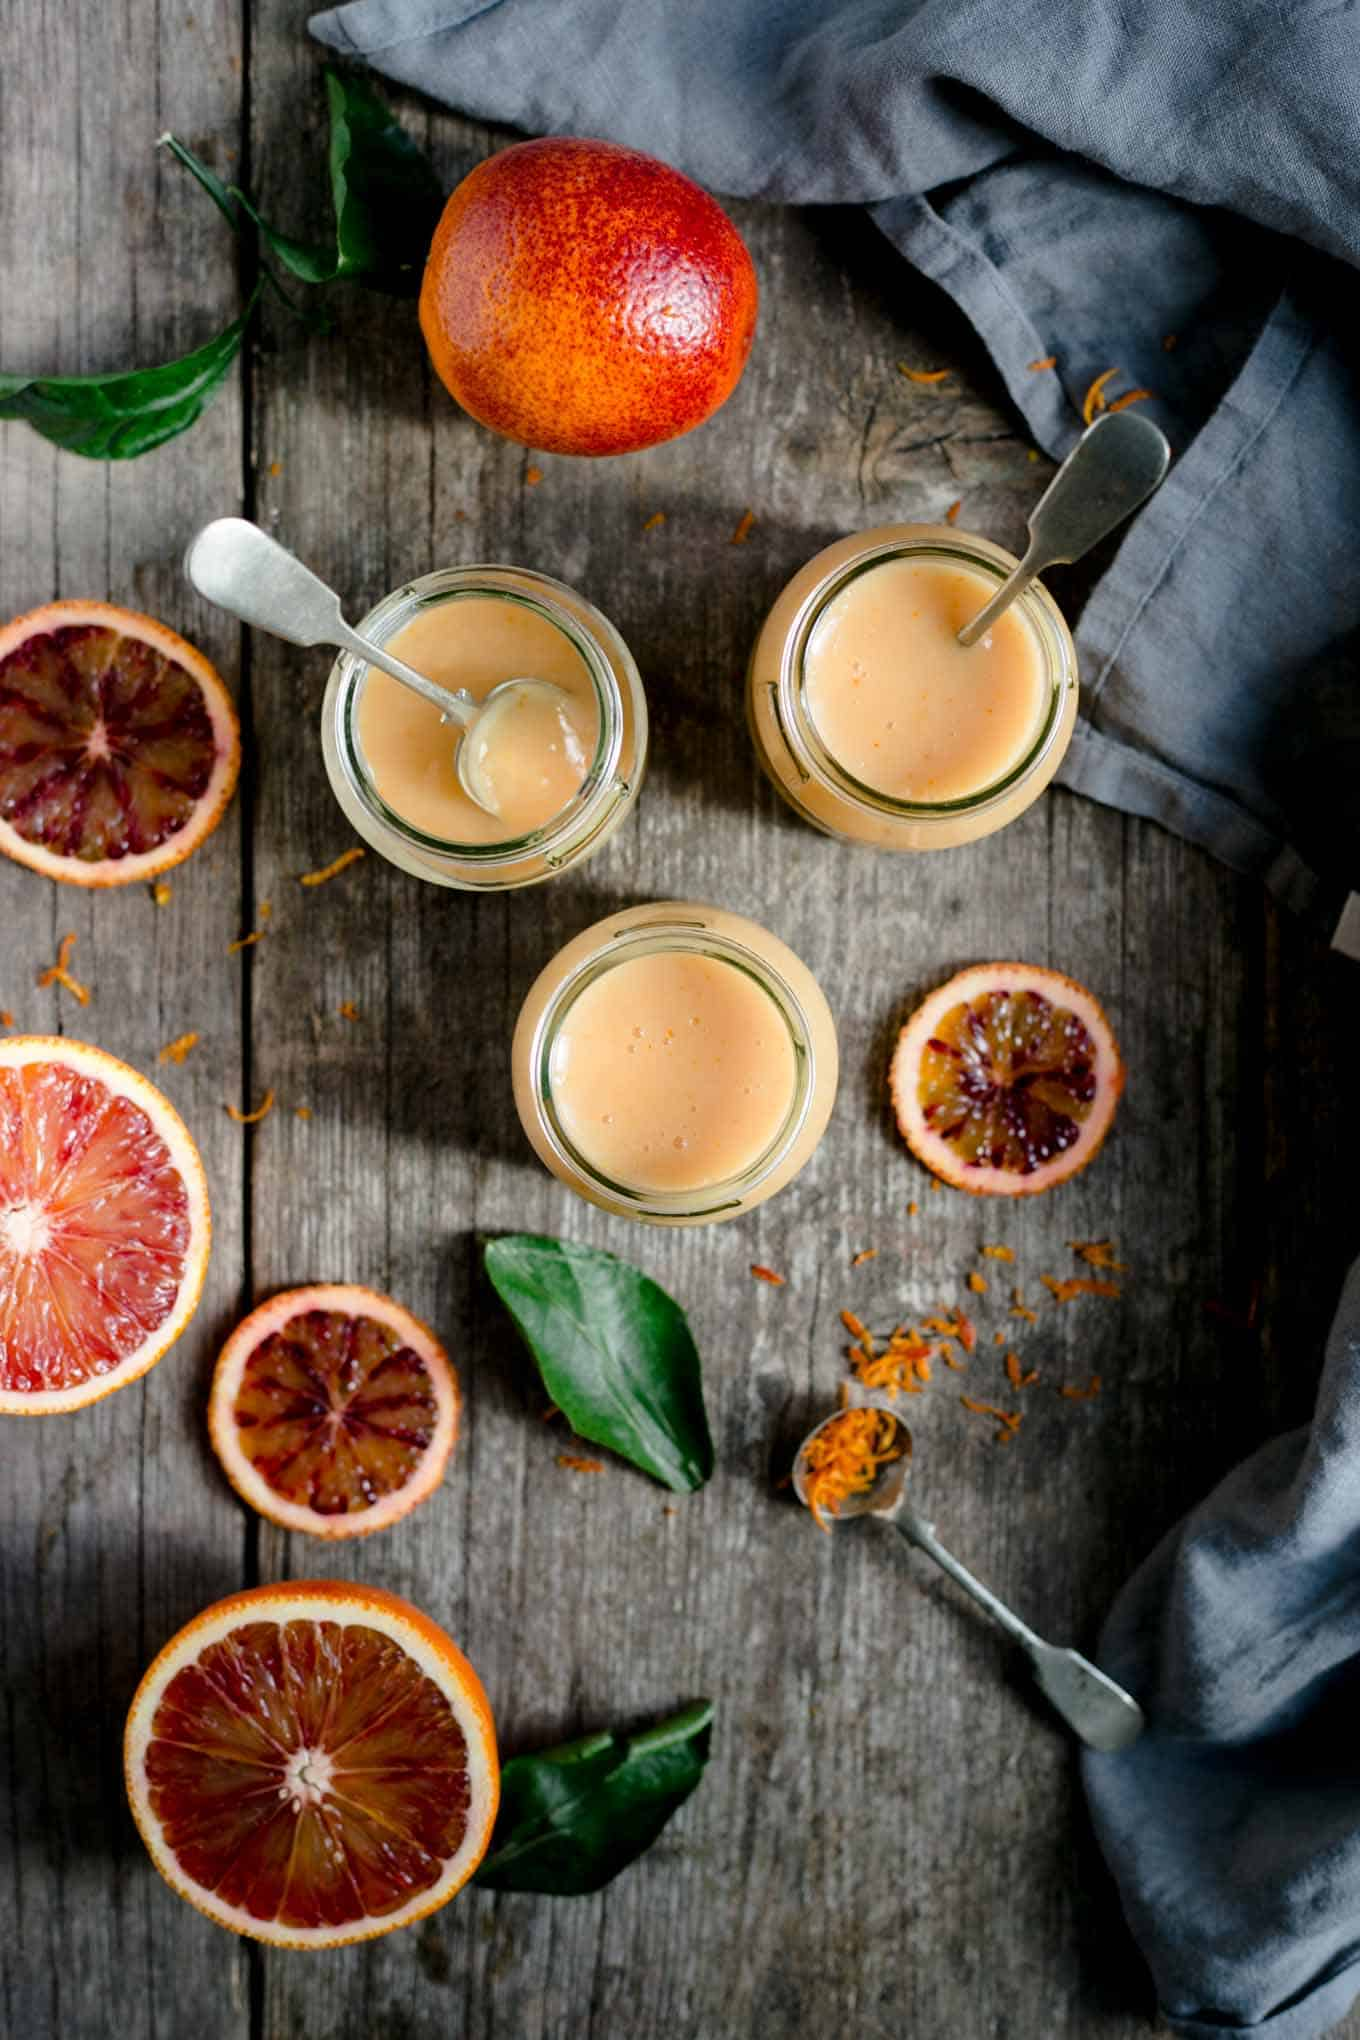 Super quick and easy vegan blood orange curd recipe #vegan #curd #dairyfree | via @annabanana.co